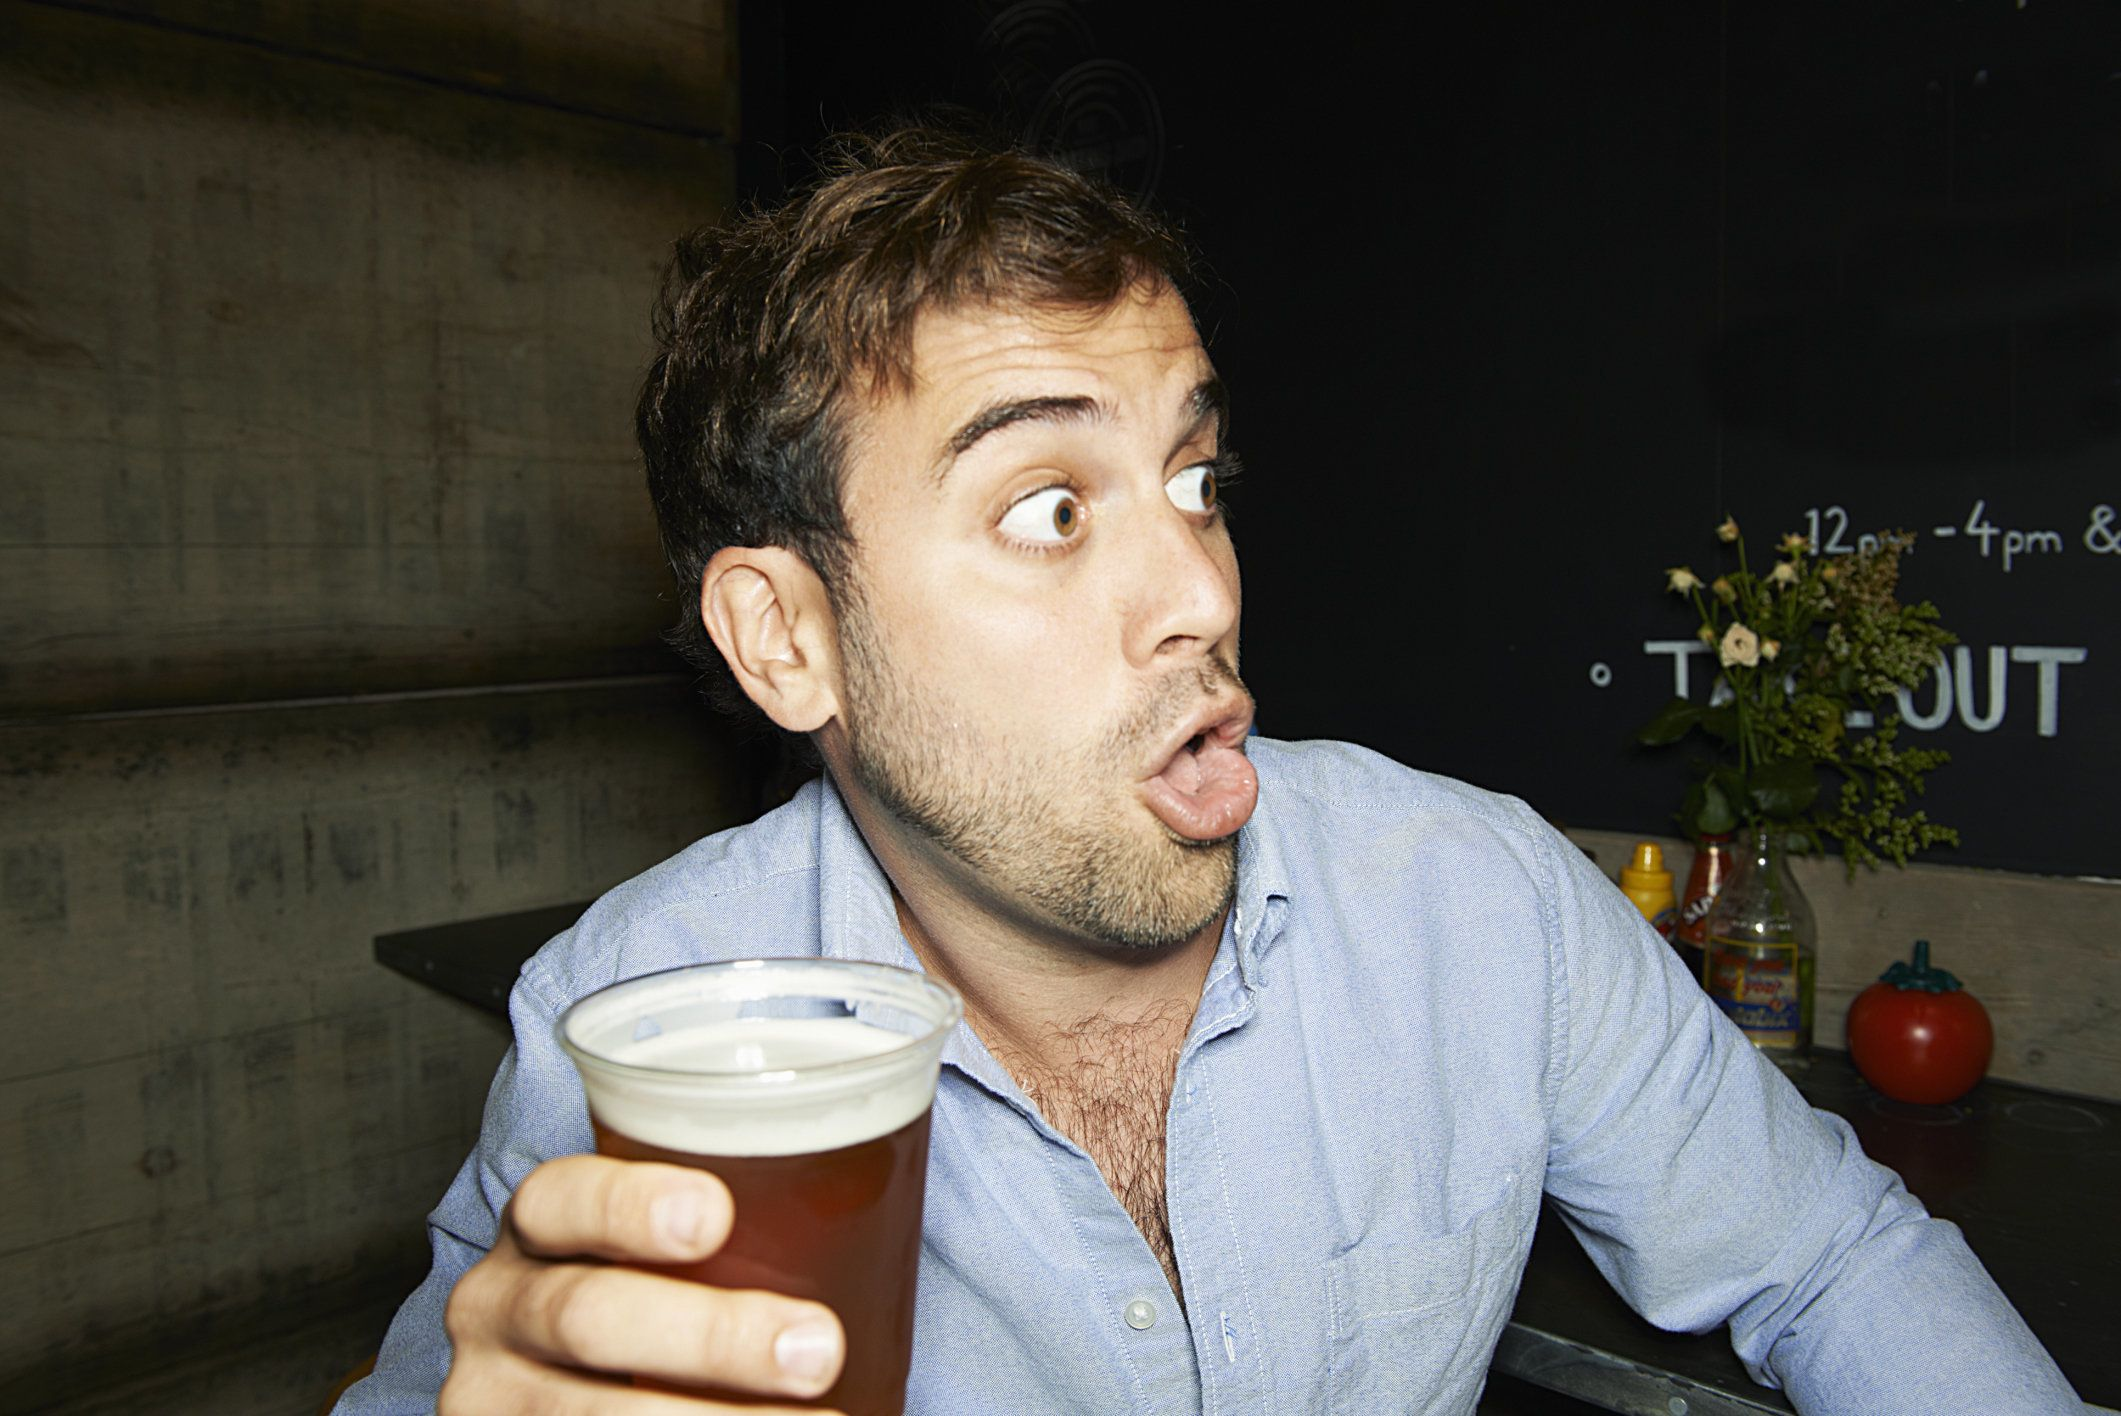 man on night out with beer